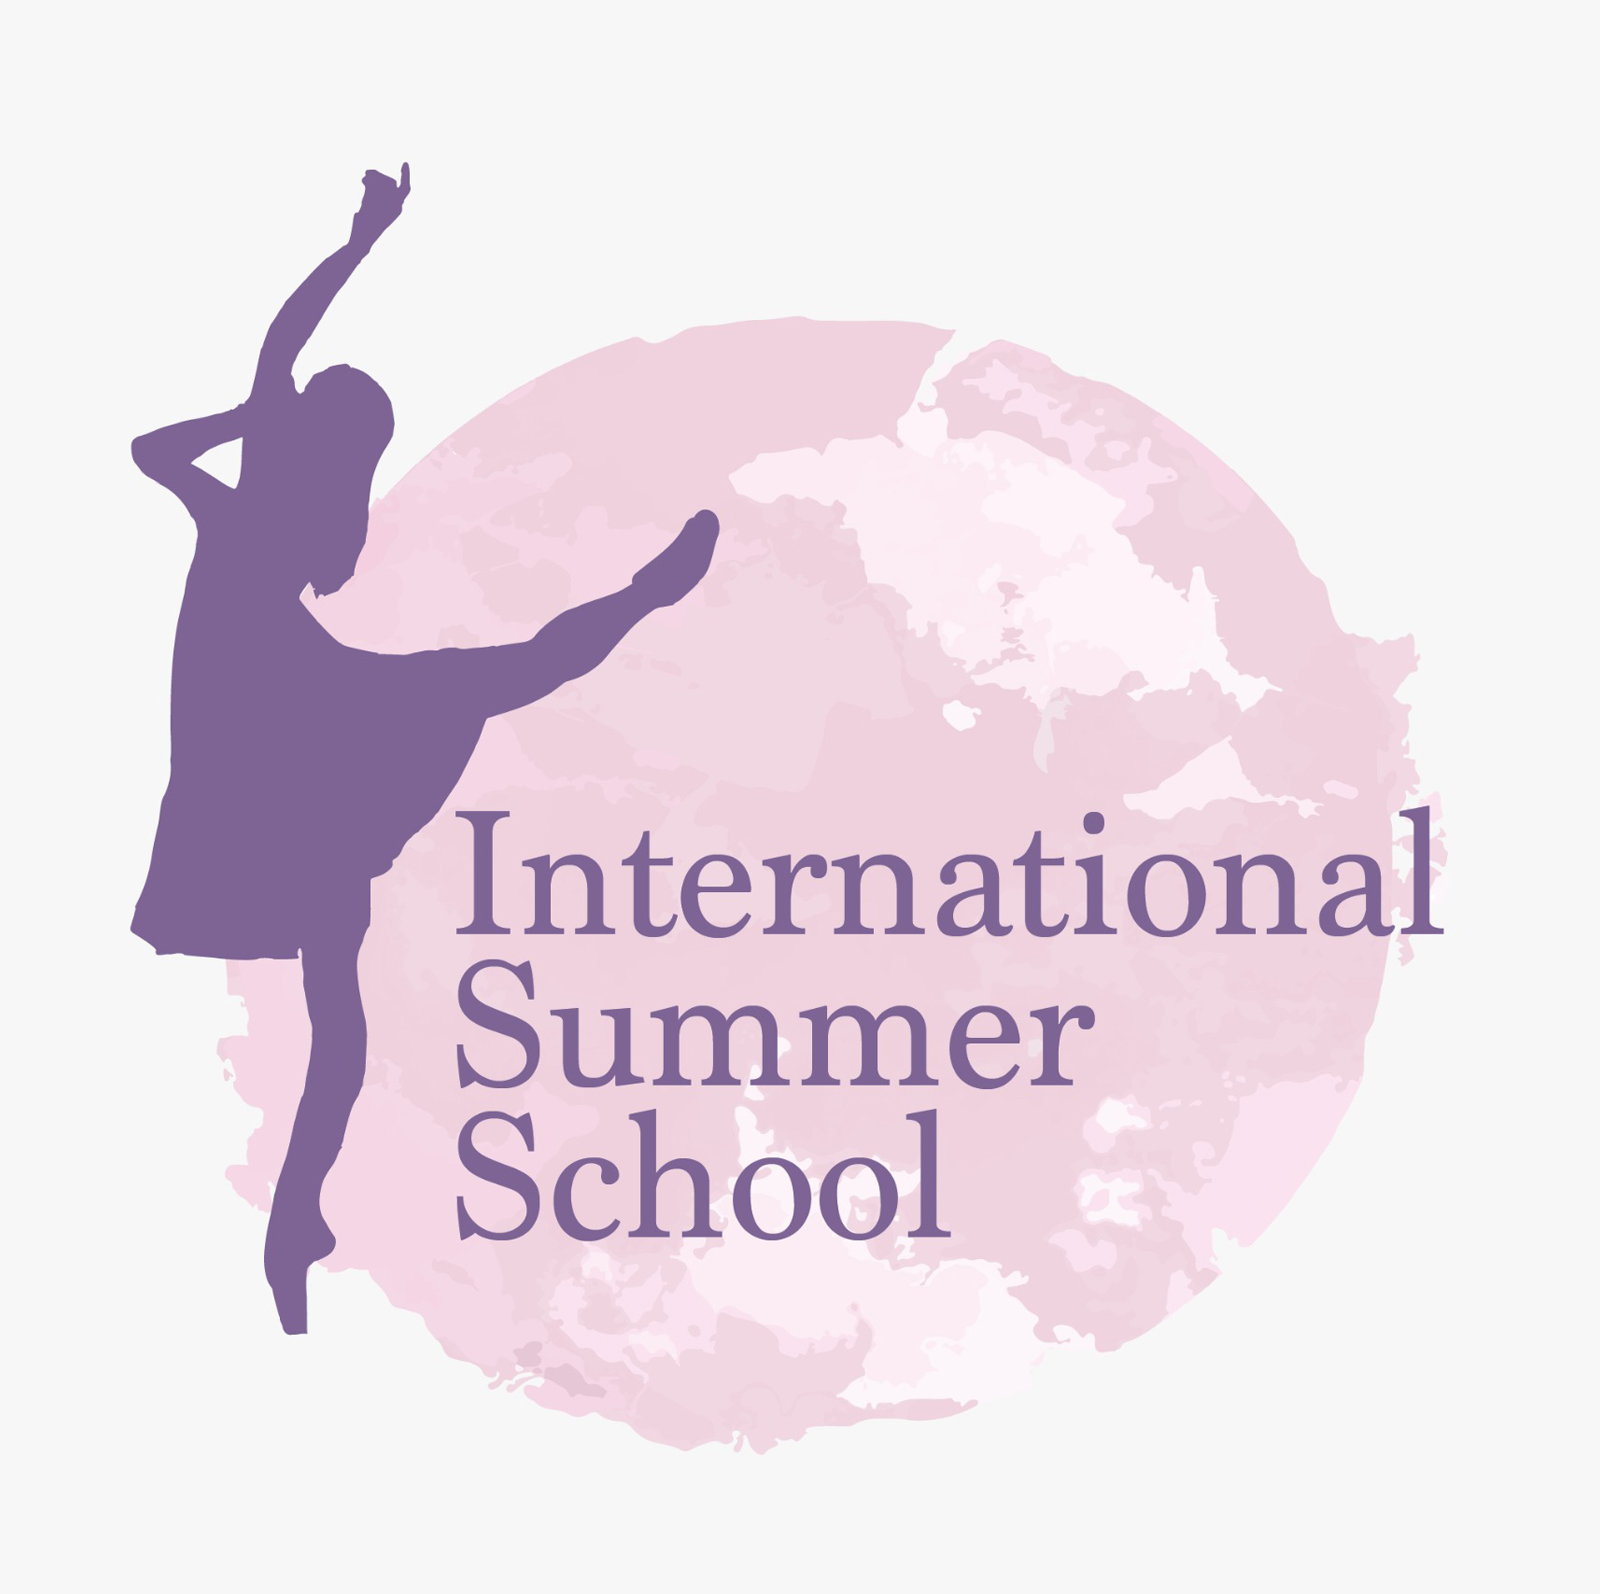 internationalsummerschool